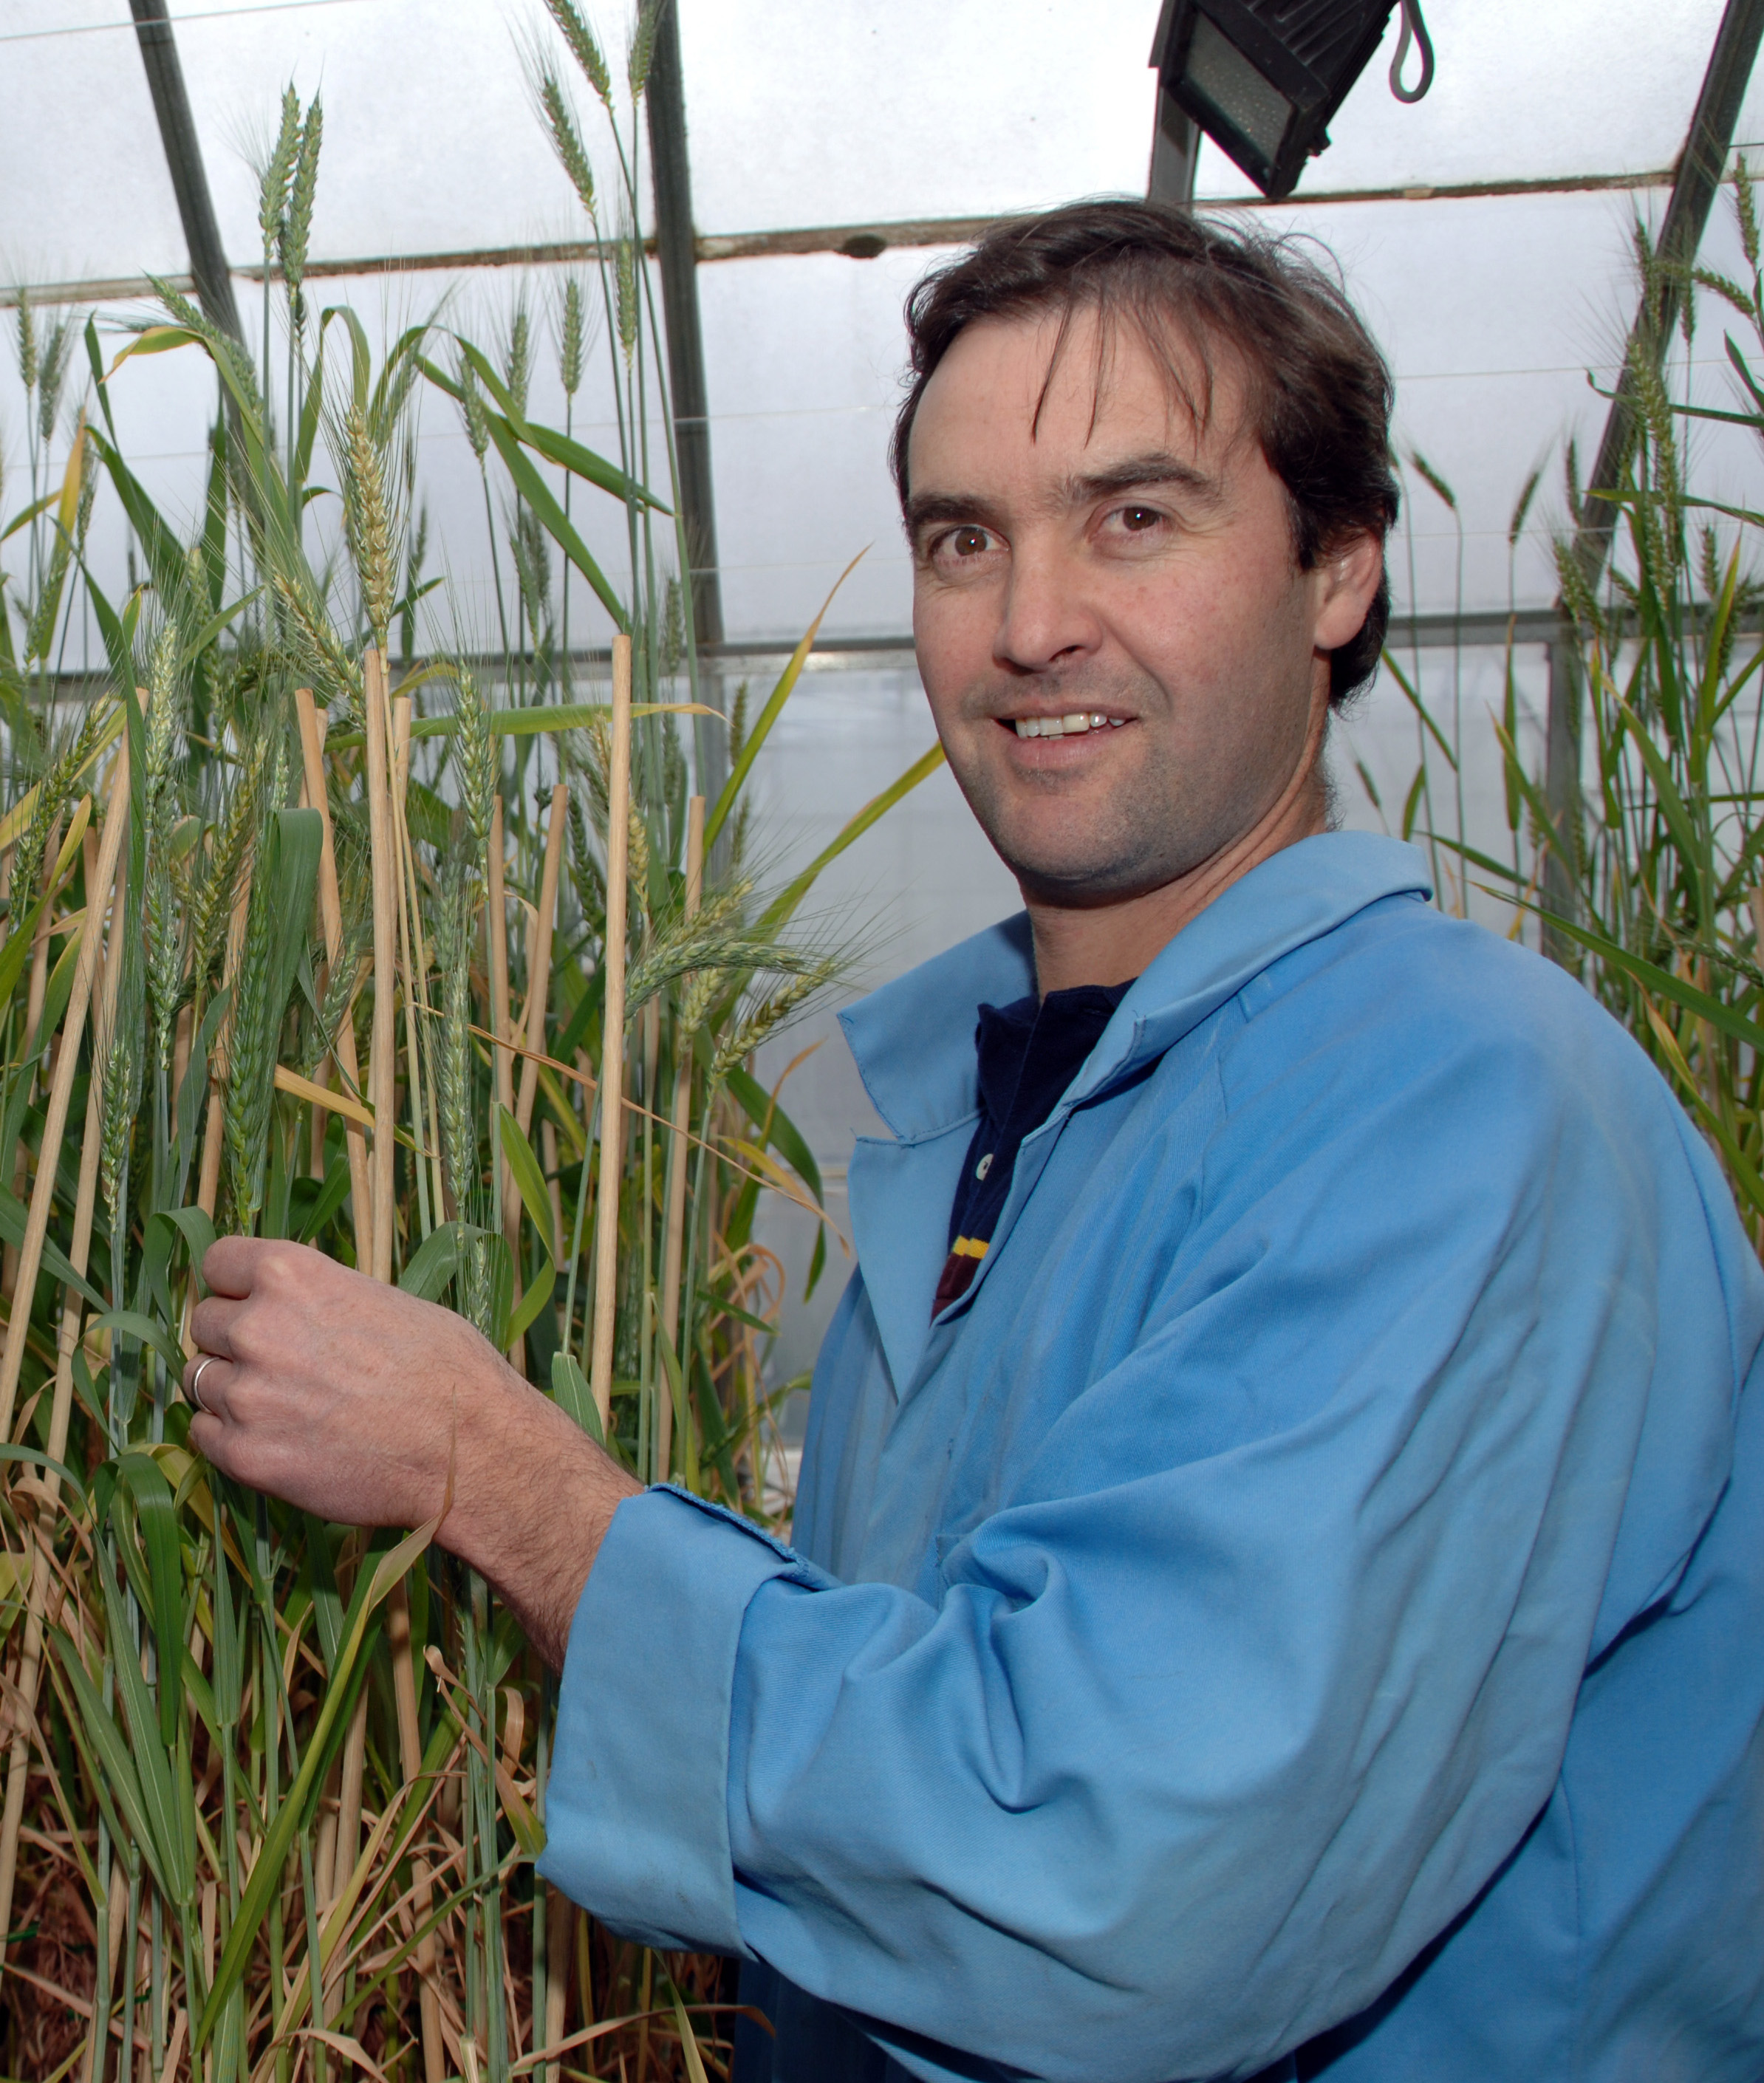 A man in a blue lab coat looking at a wheat plant in a pot